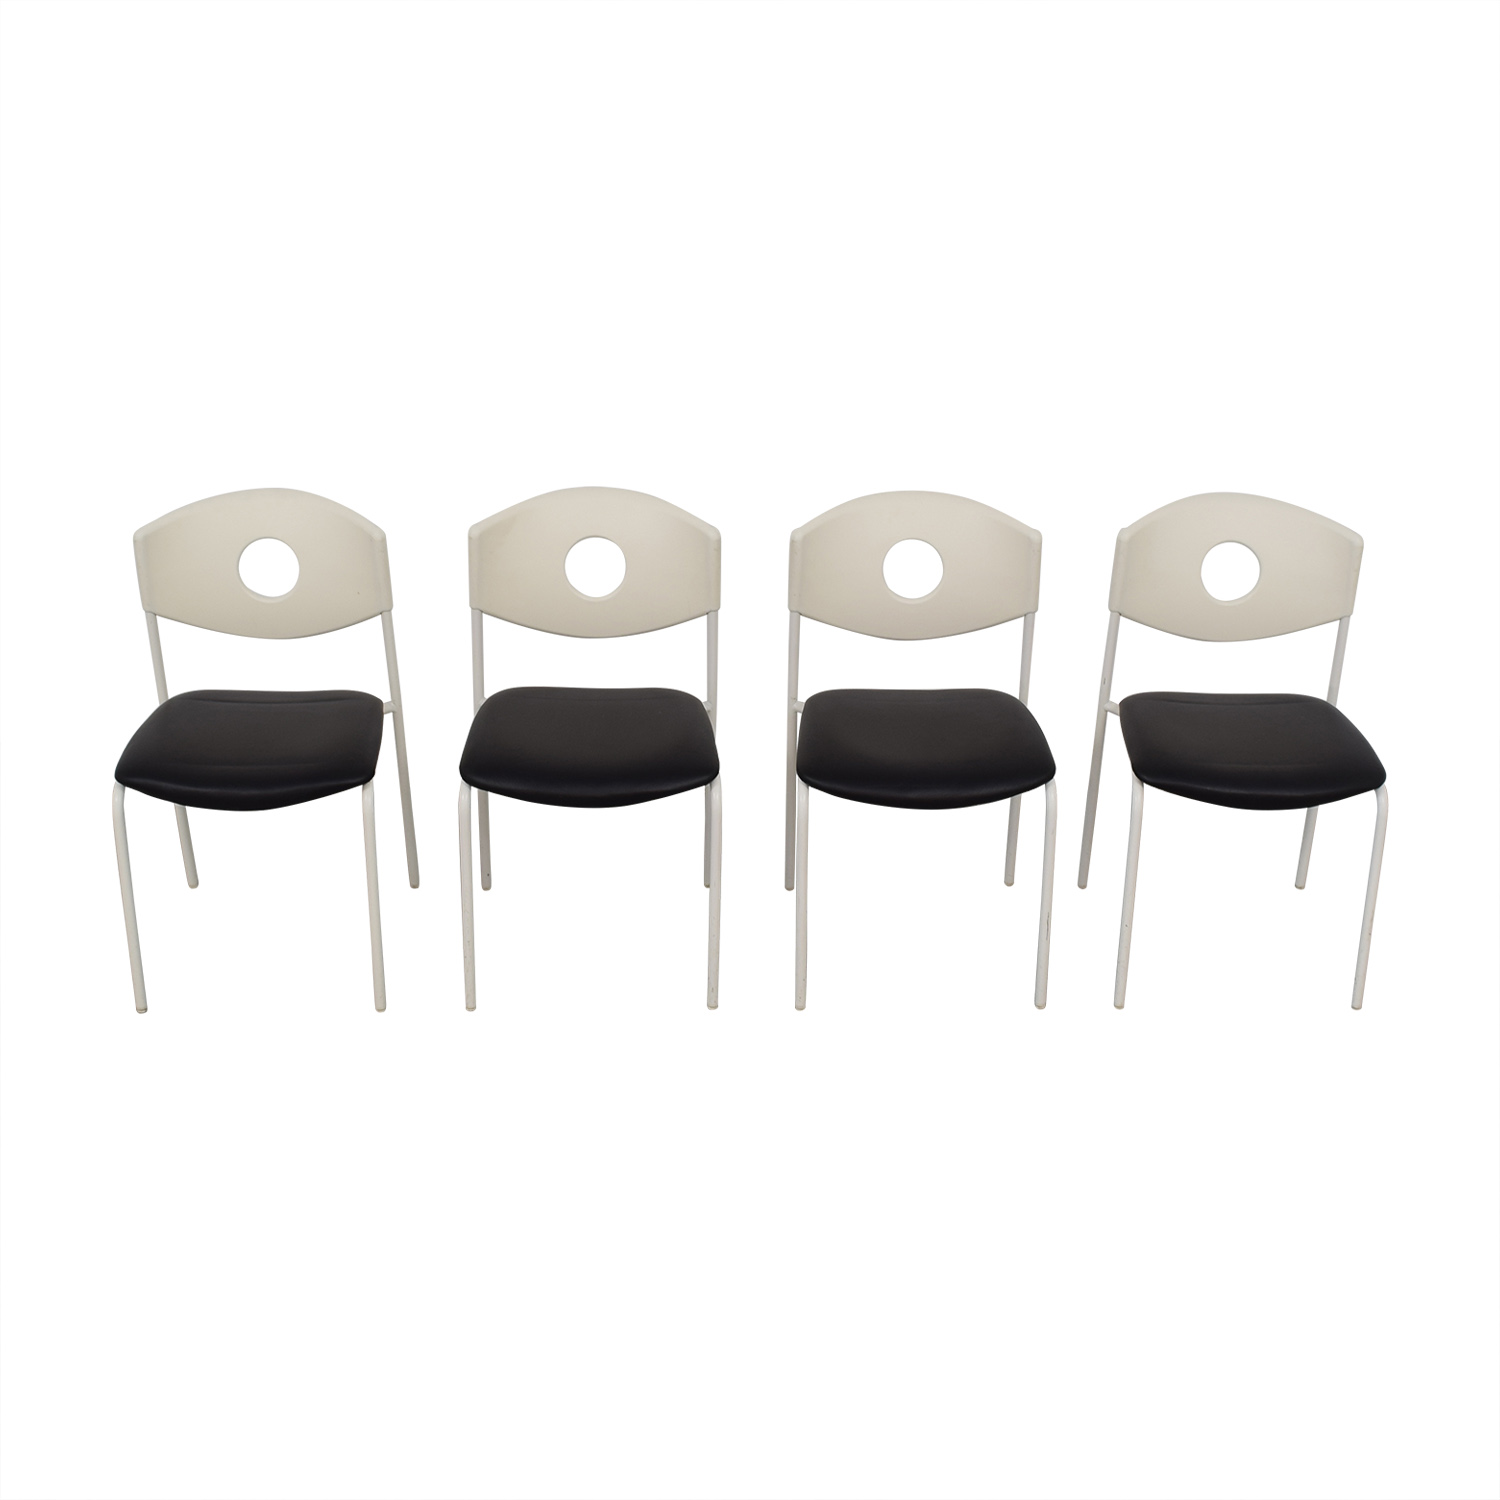 IKEA Stoljan Black and White Chairs / Dining Chairs